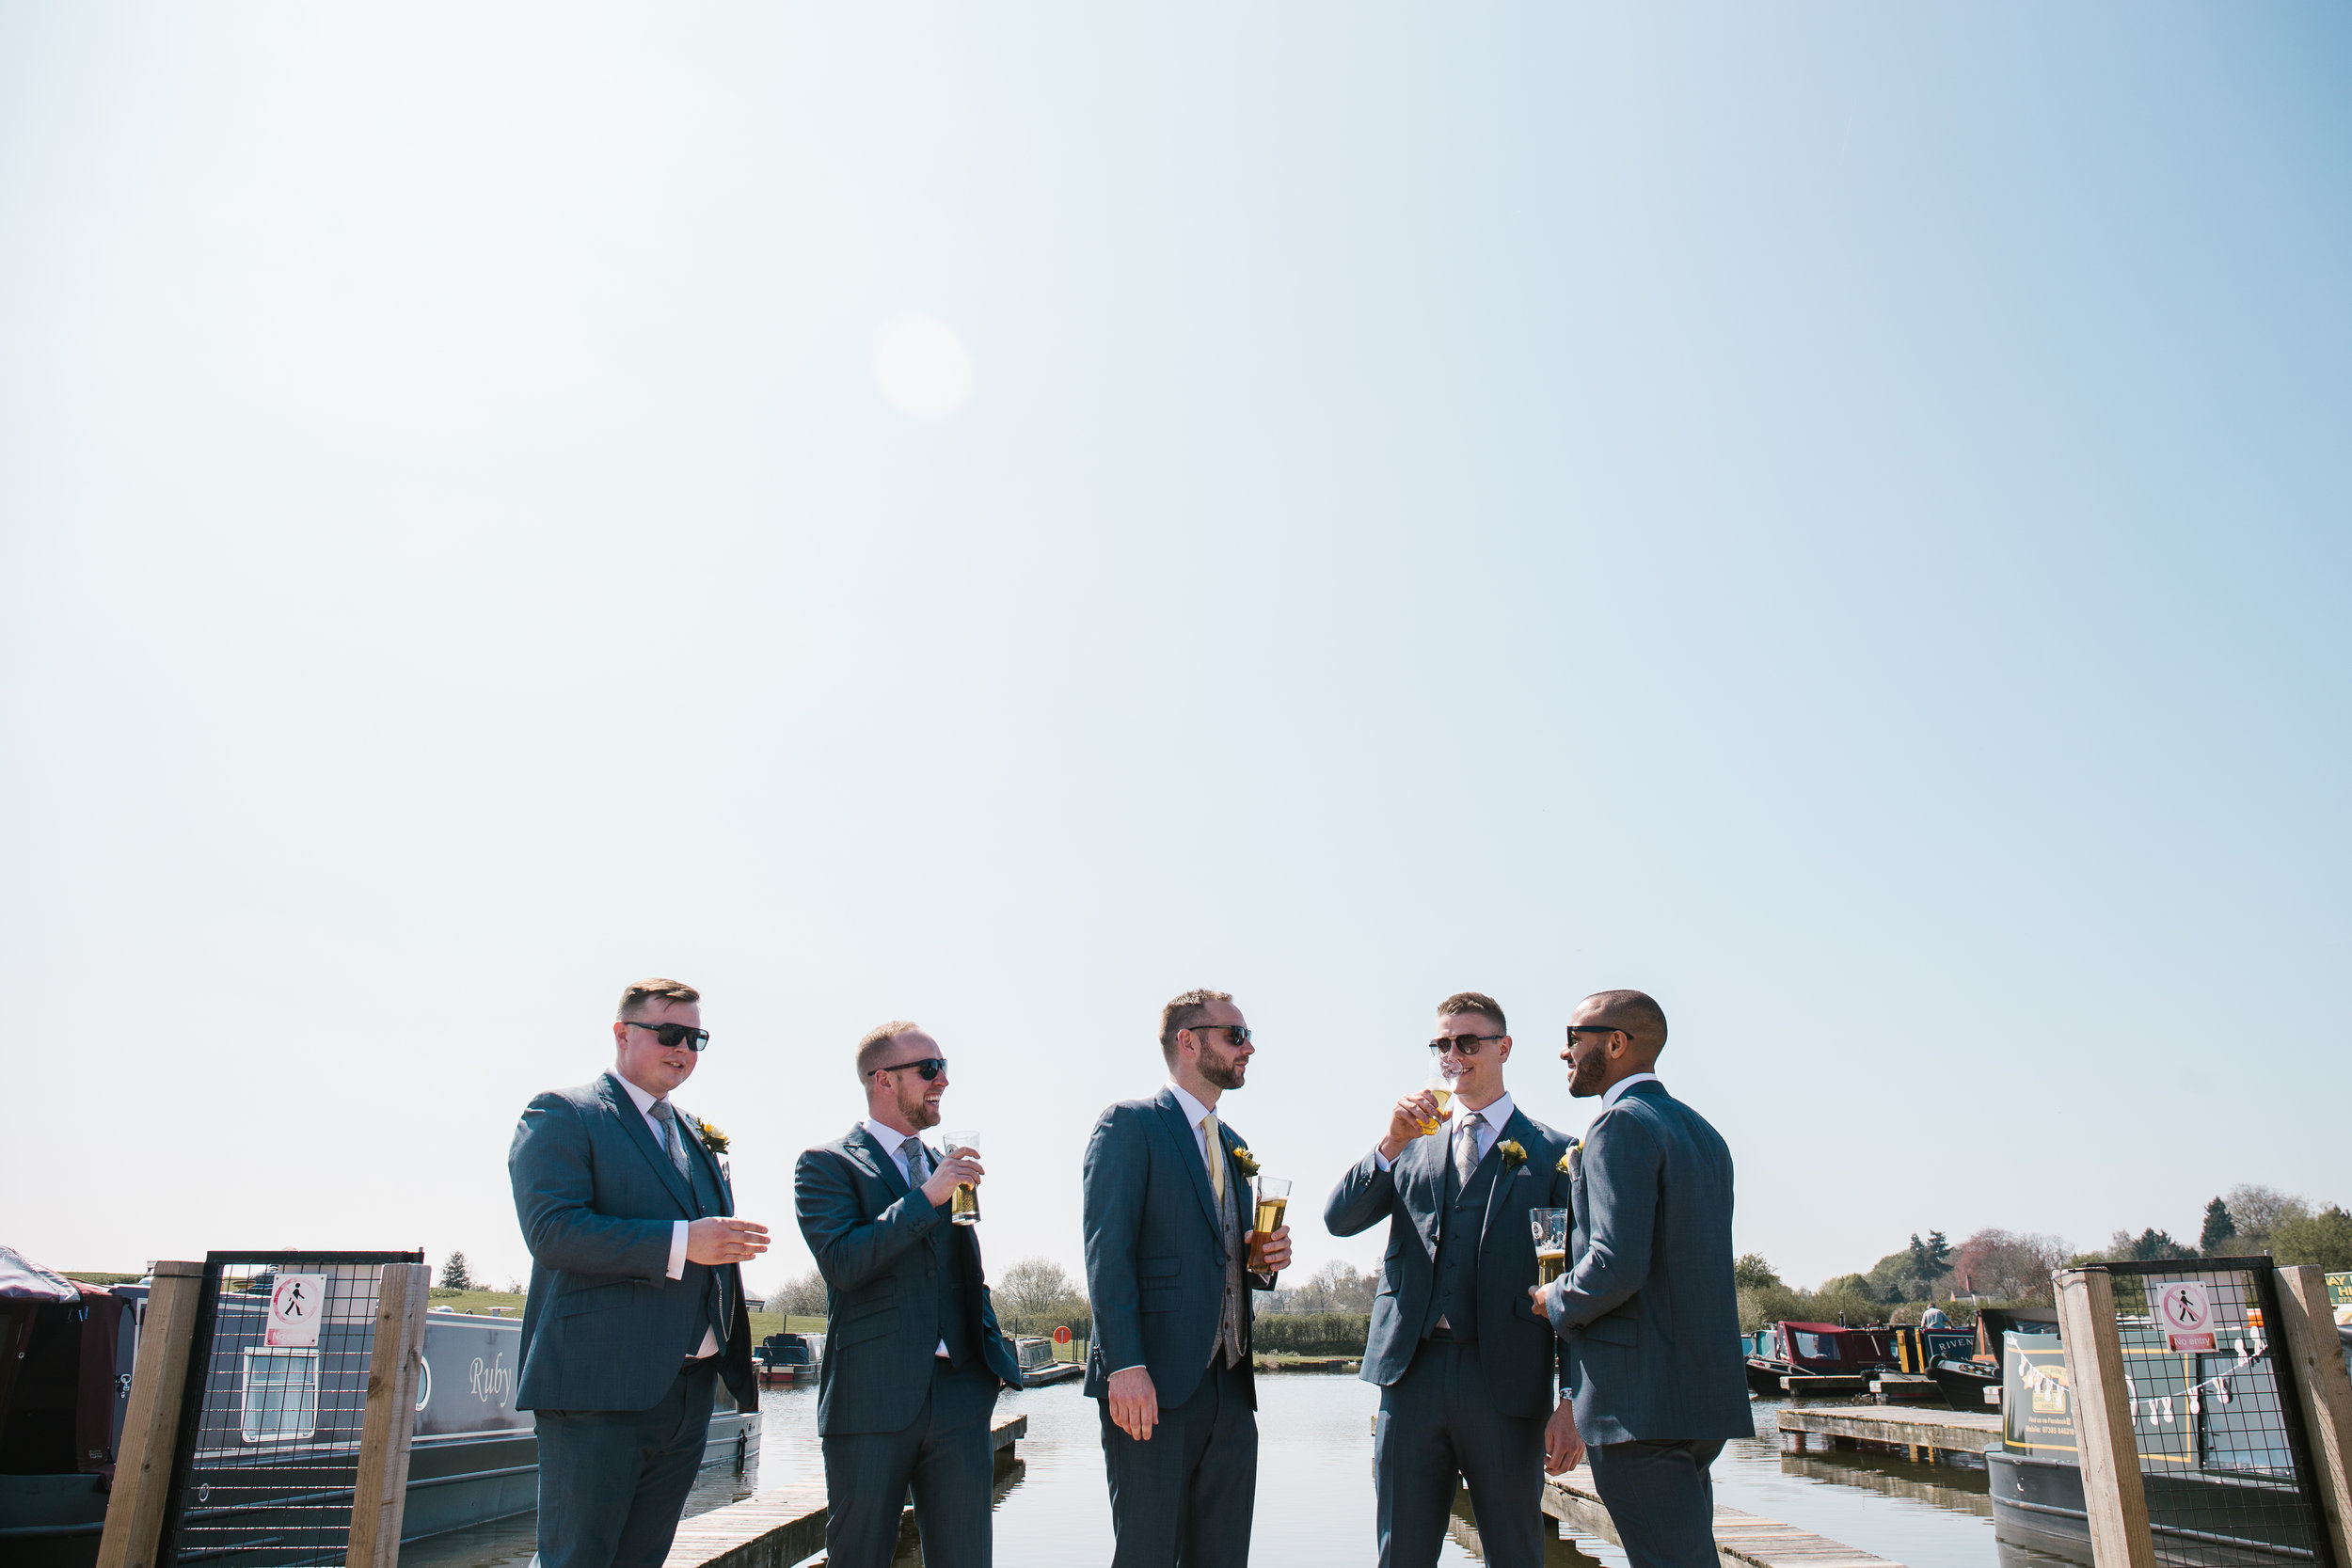 groom with his groomsmen before the wedding at the boat house in aston marina staffordshire